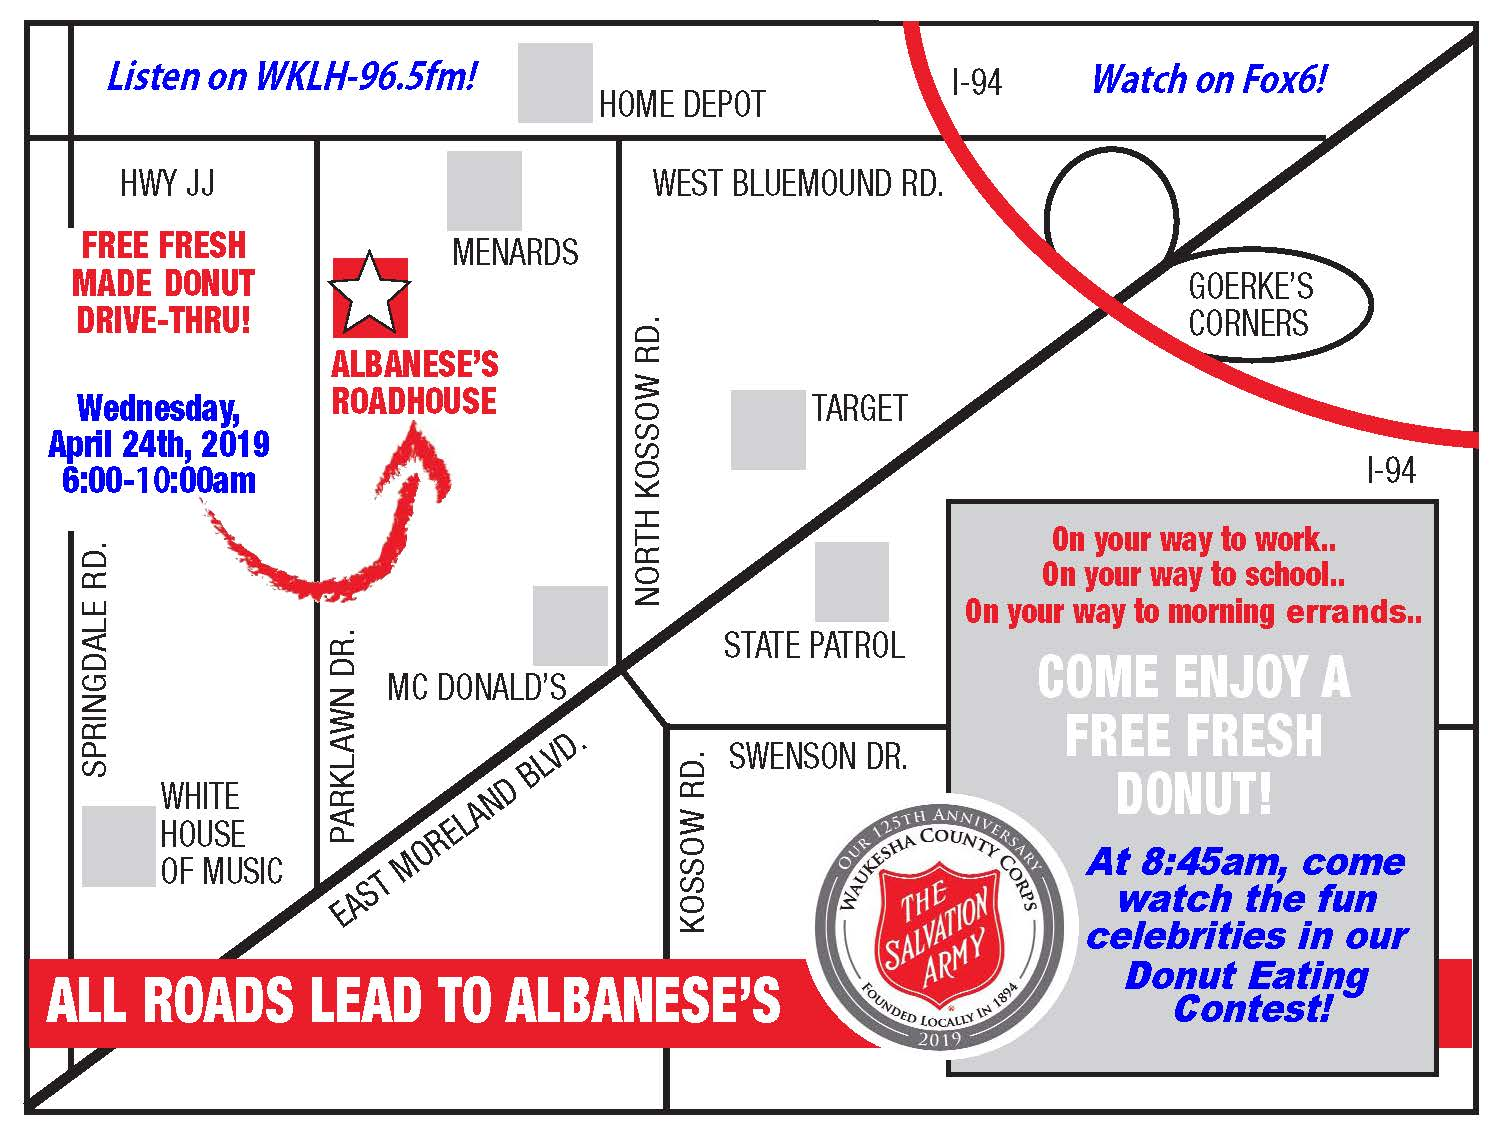 Special Events - Waukesha Salvation Army